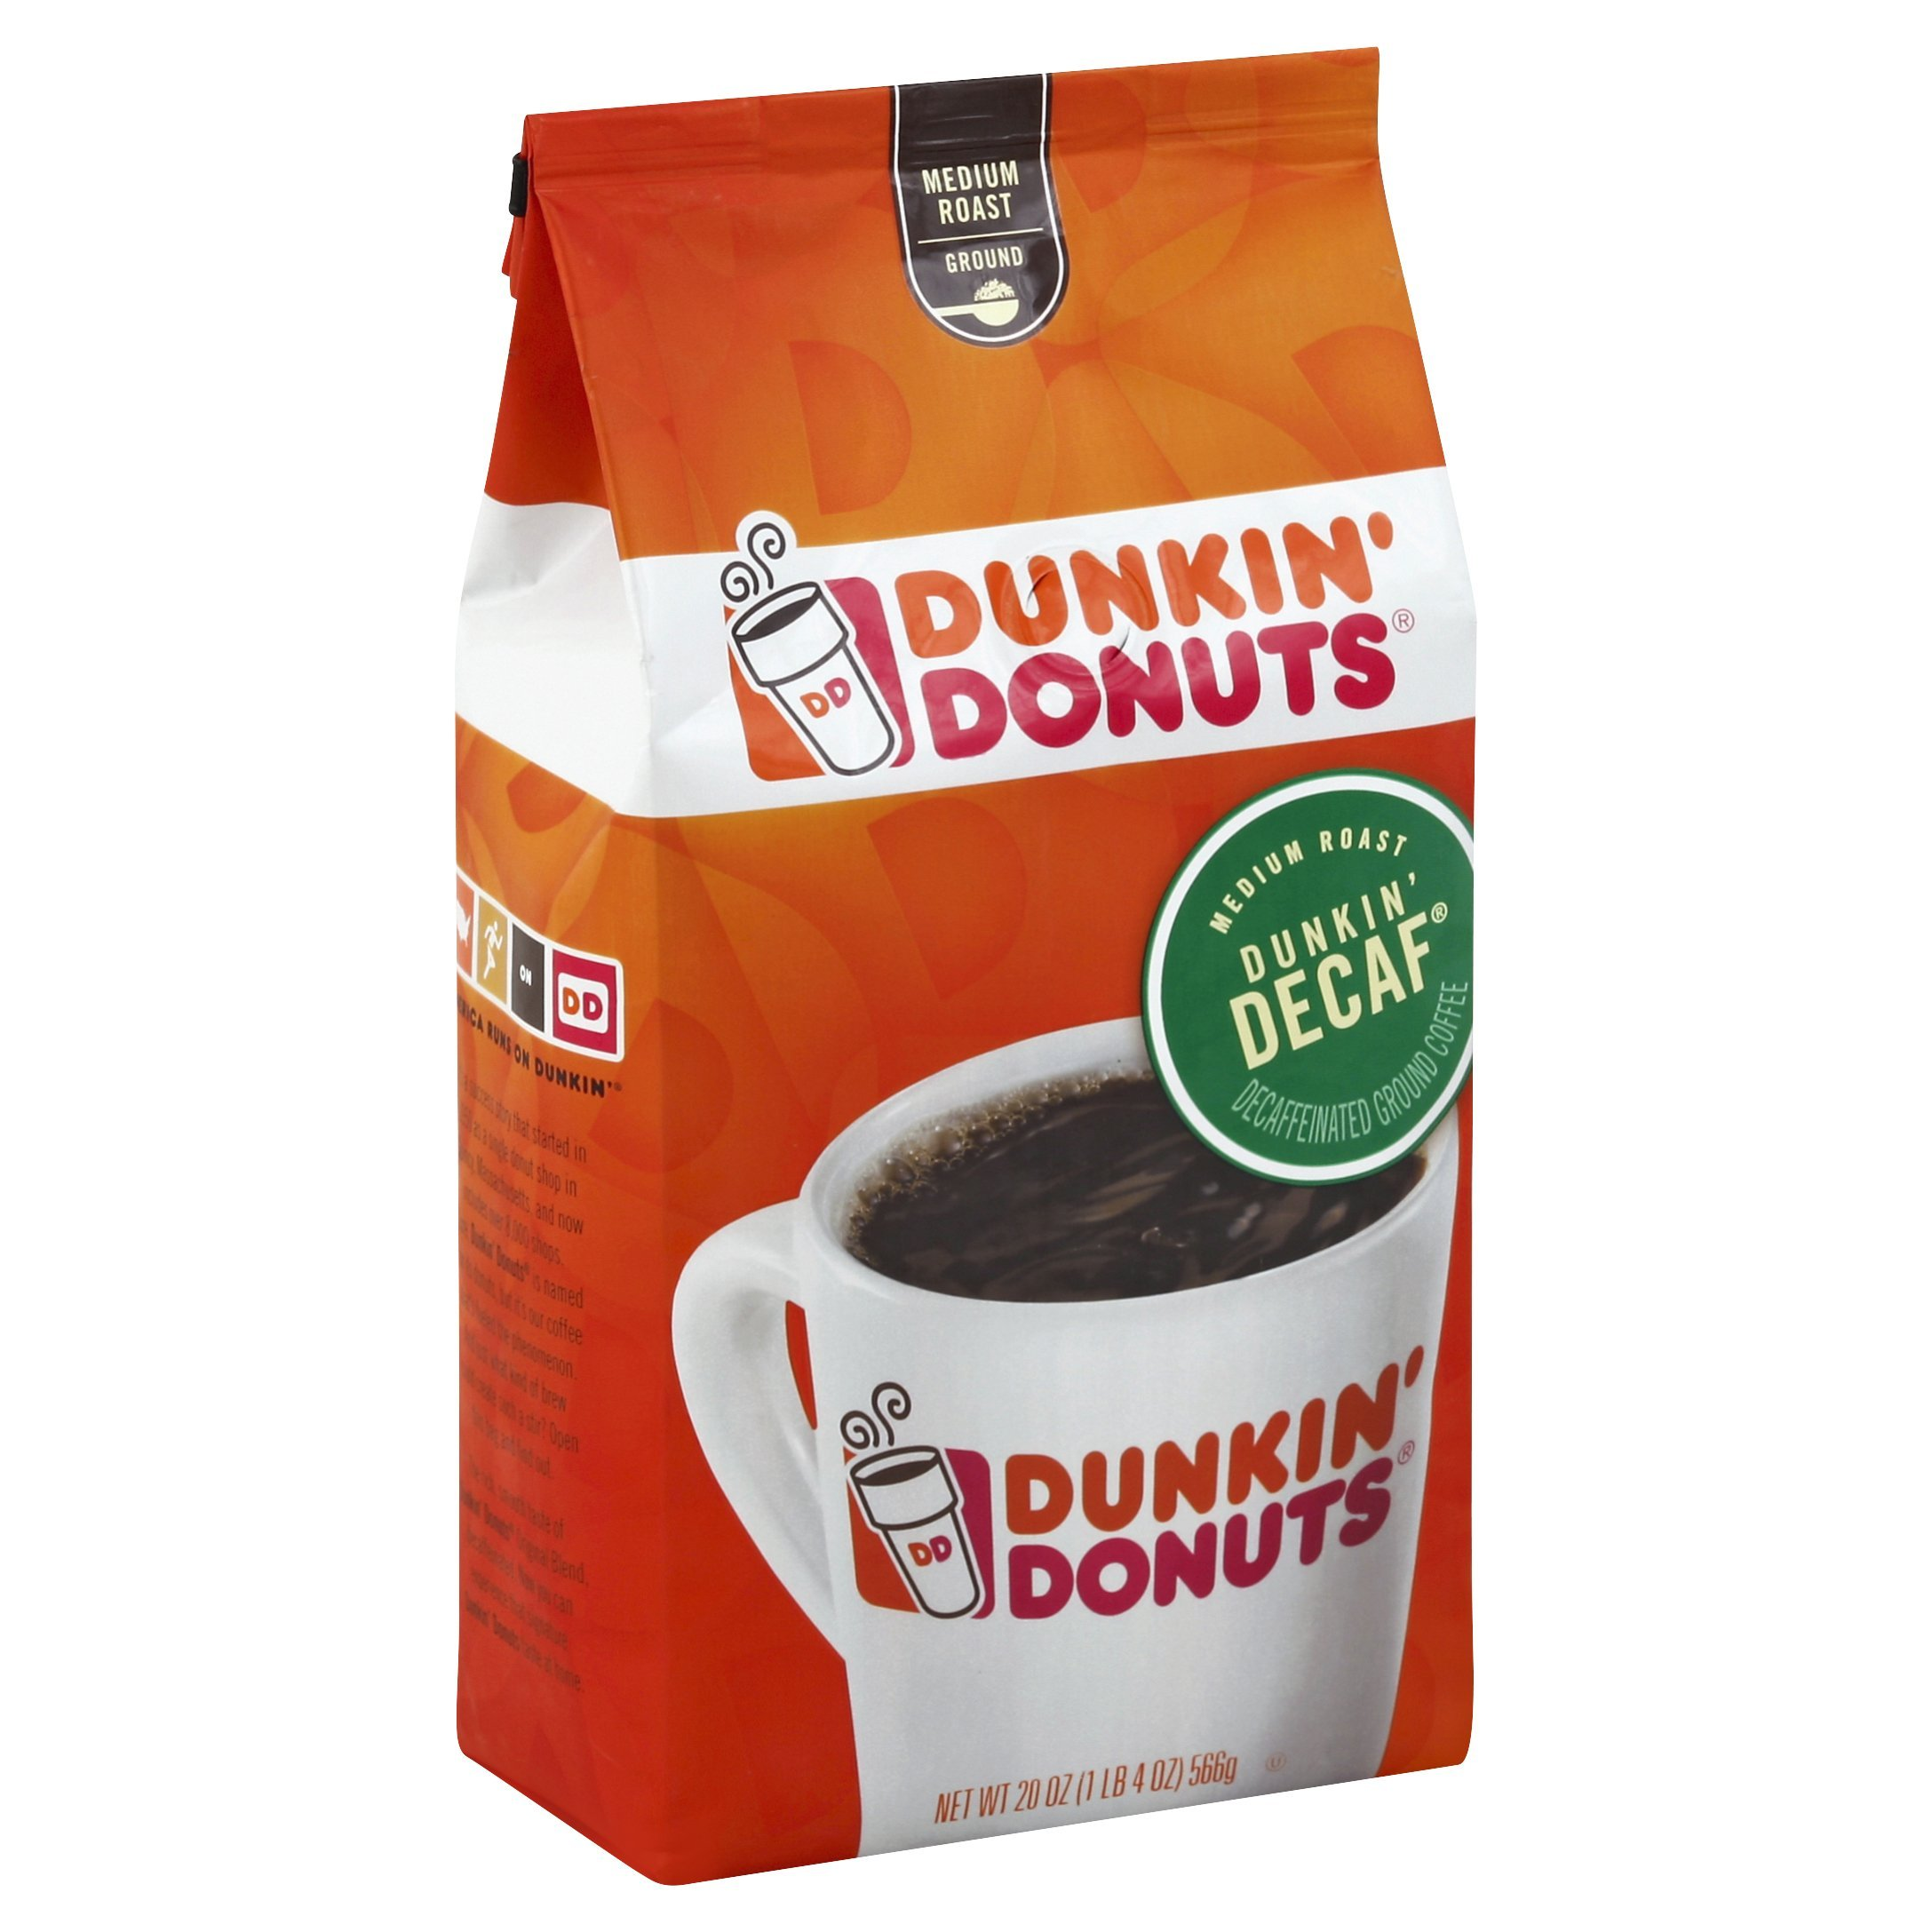 Dunkin' Donuts Original Blend Ground Coffee, Decaf, Medium Roast, 20 Ounces (Pack of 6) by Dunkin' Donuts